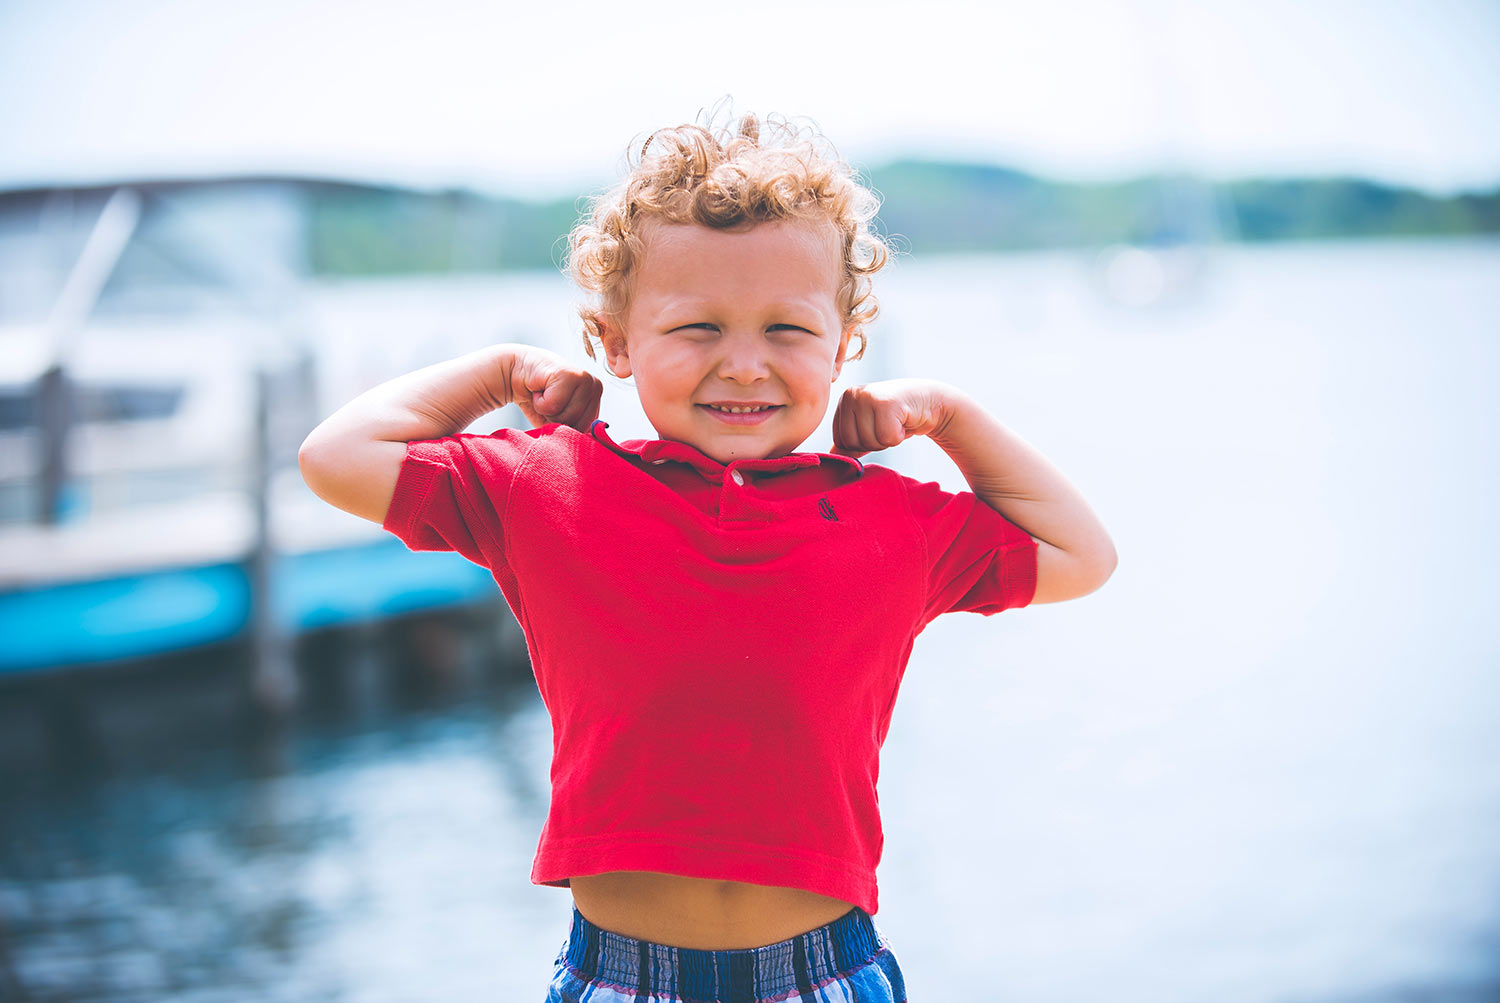 Little boy in red shirt flexing his muscles, 7 Little Wins to Boost Your Kid's Health, featuring Dr. Alison Mitzner in Parents Magazine